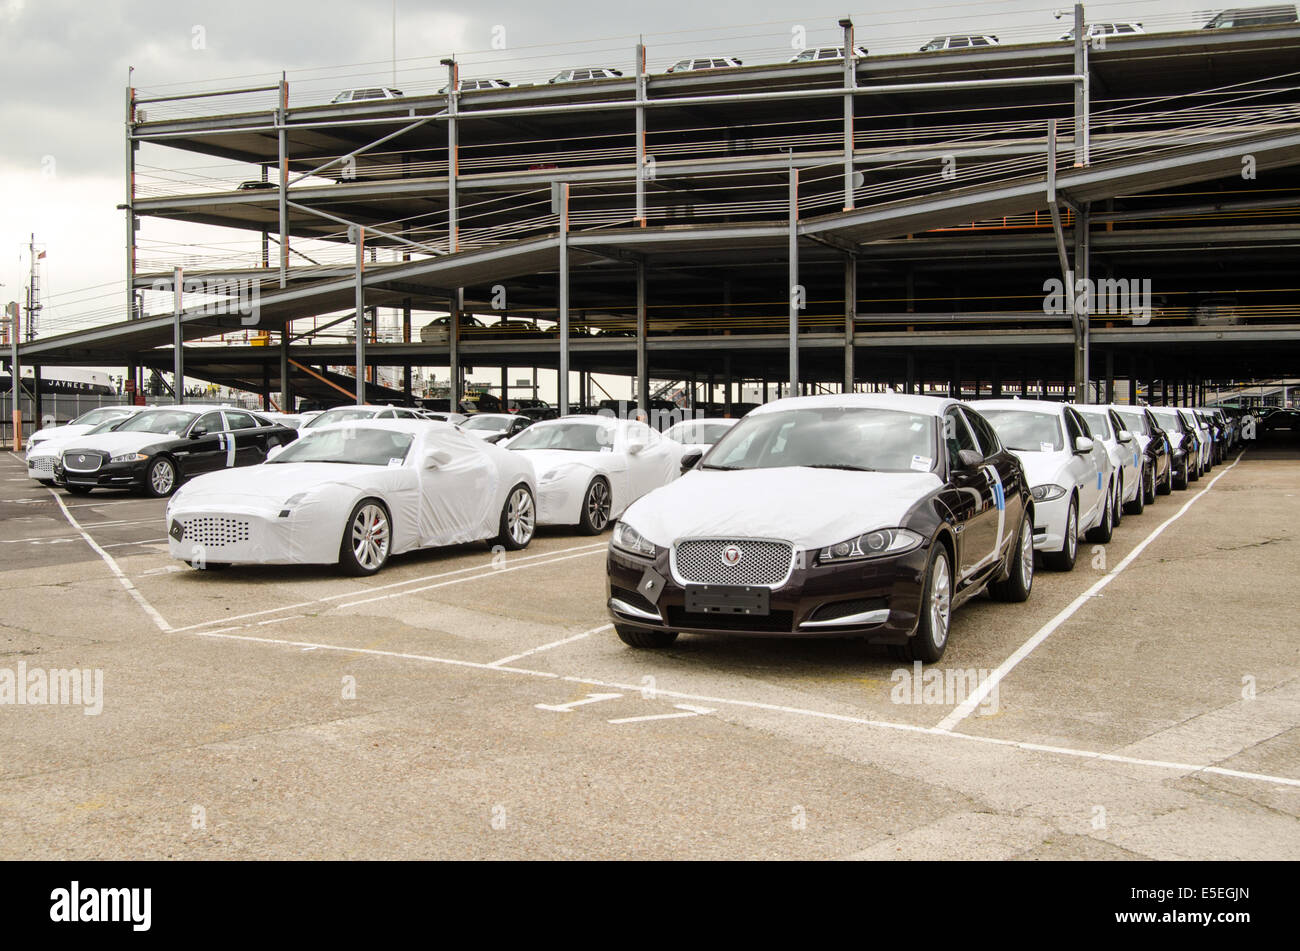 SOUTHAMPTON, UK  MAY 31, 2014:  Rows of newly built Jaguar cars parked at Southampton docks before being exported. - Stock Image